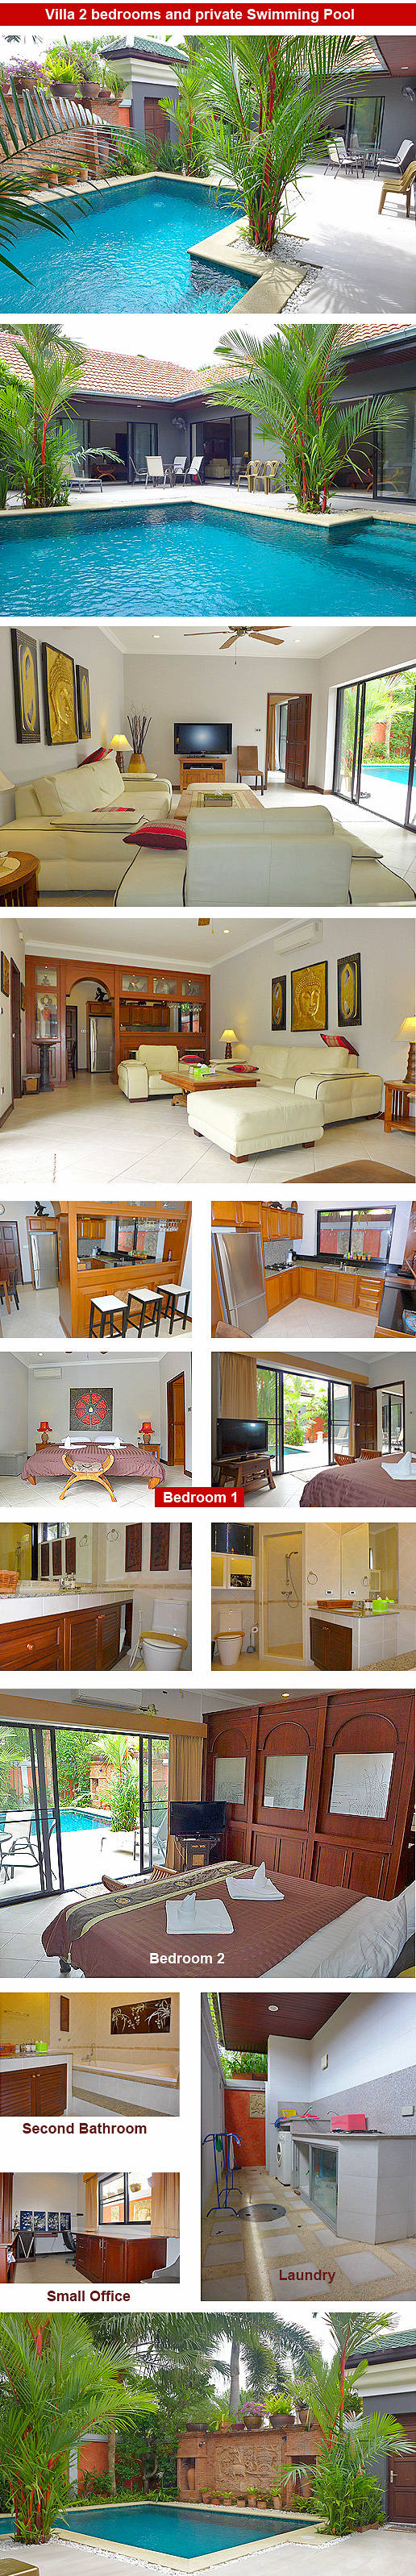 2 bedroom Villa with private swimming pool - Pattaya